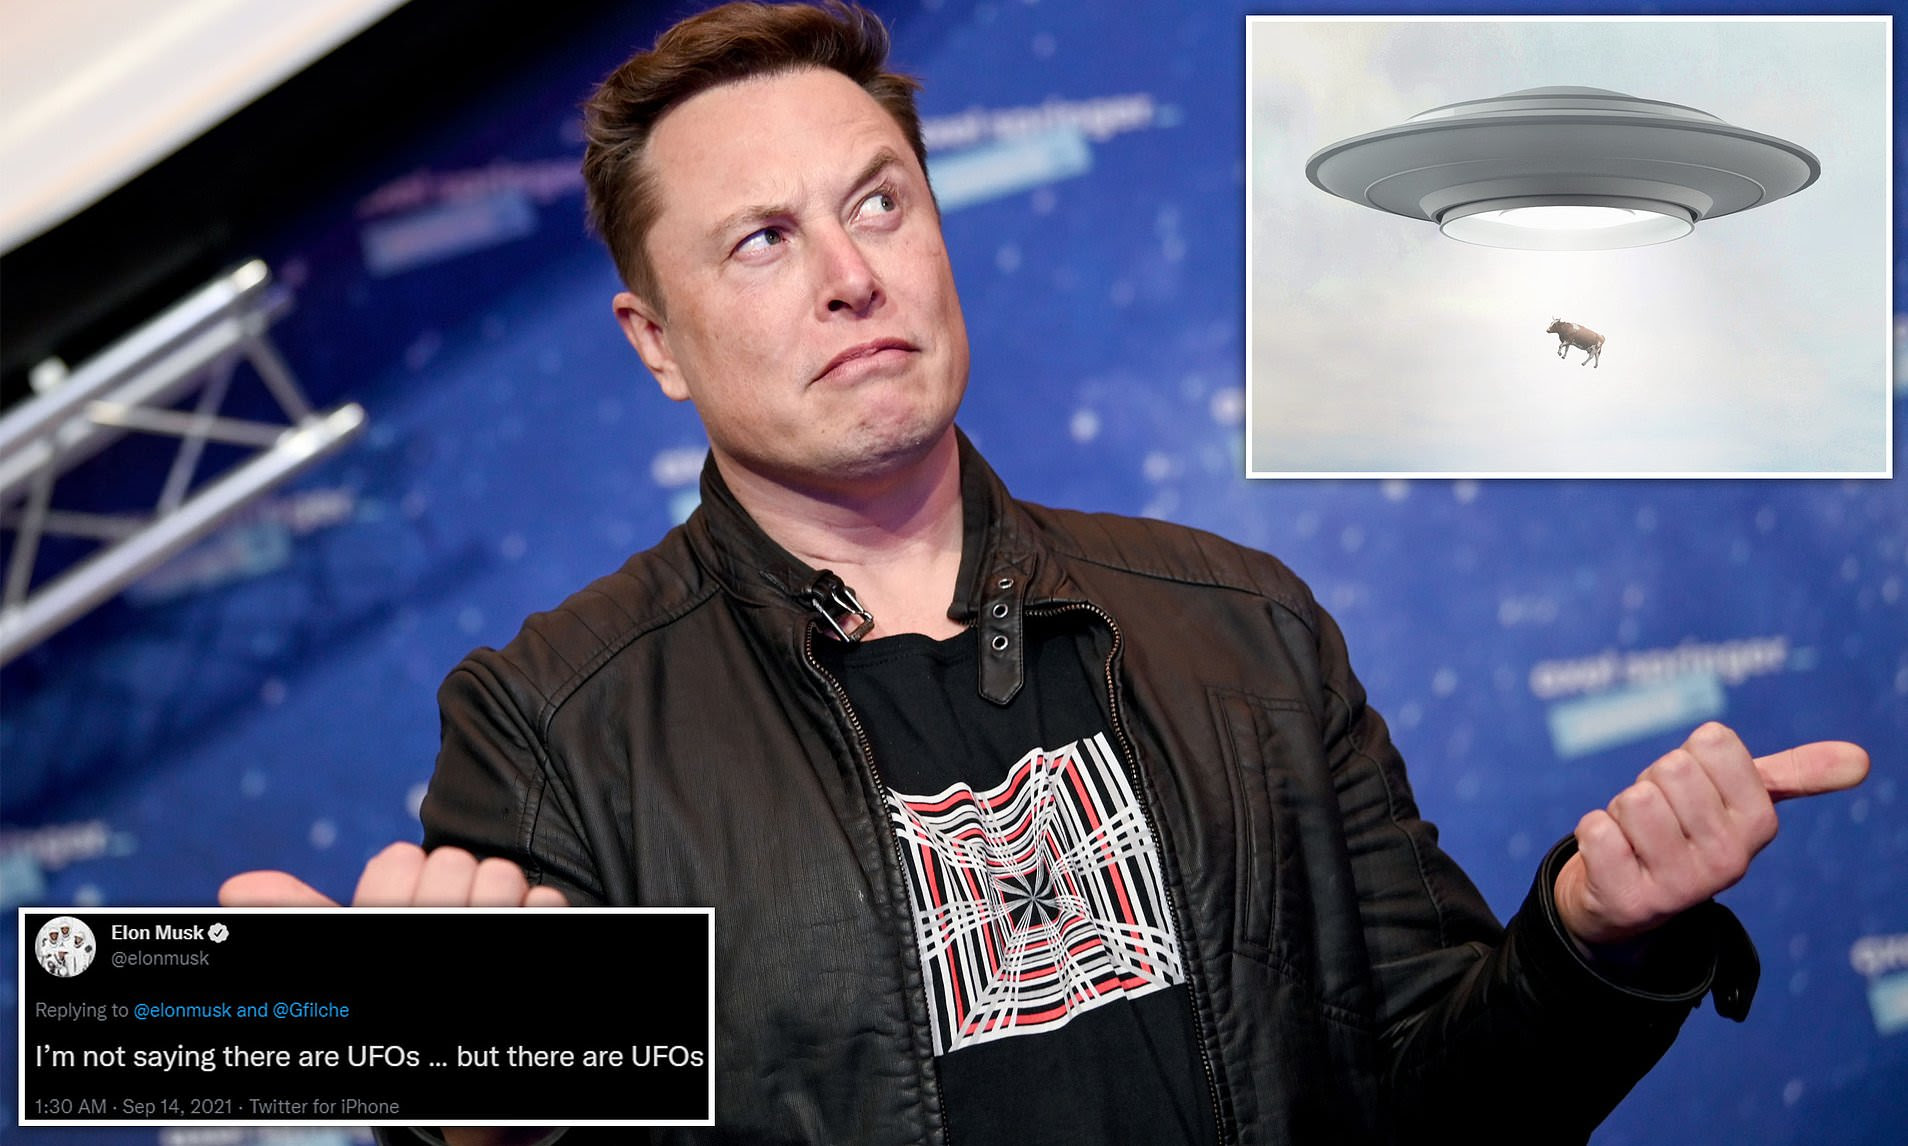 Aliens? Elon Musk sparks a Twitter frenzy with claim that 'there are UFOs'